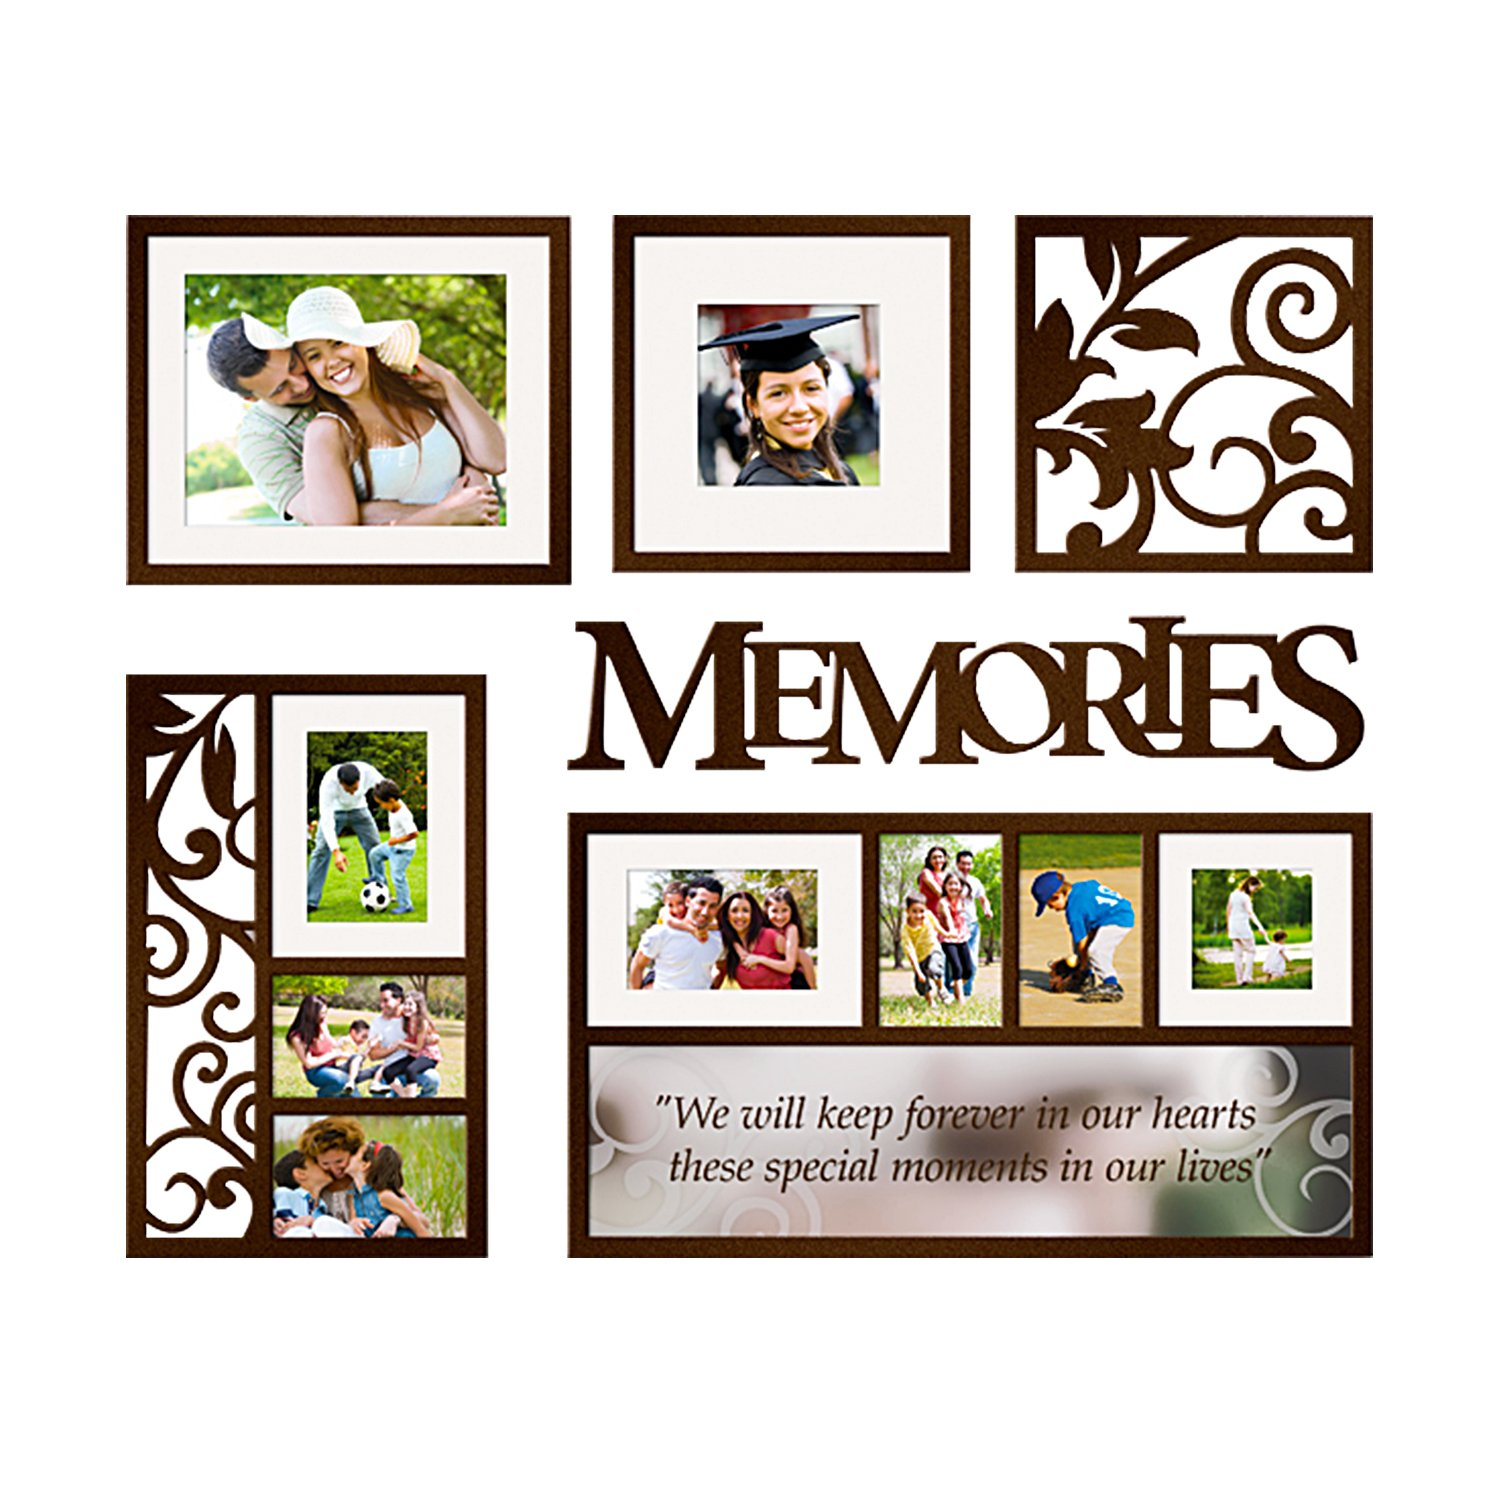 Jerry & Maggie - Photo Frame   Plaque   Mirror College Frame - Wall Decoration Combination - Black PVC Picture Frame Selfie Gallery Collage W Hanging Template & Wall Mounting Design Valentine